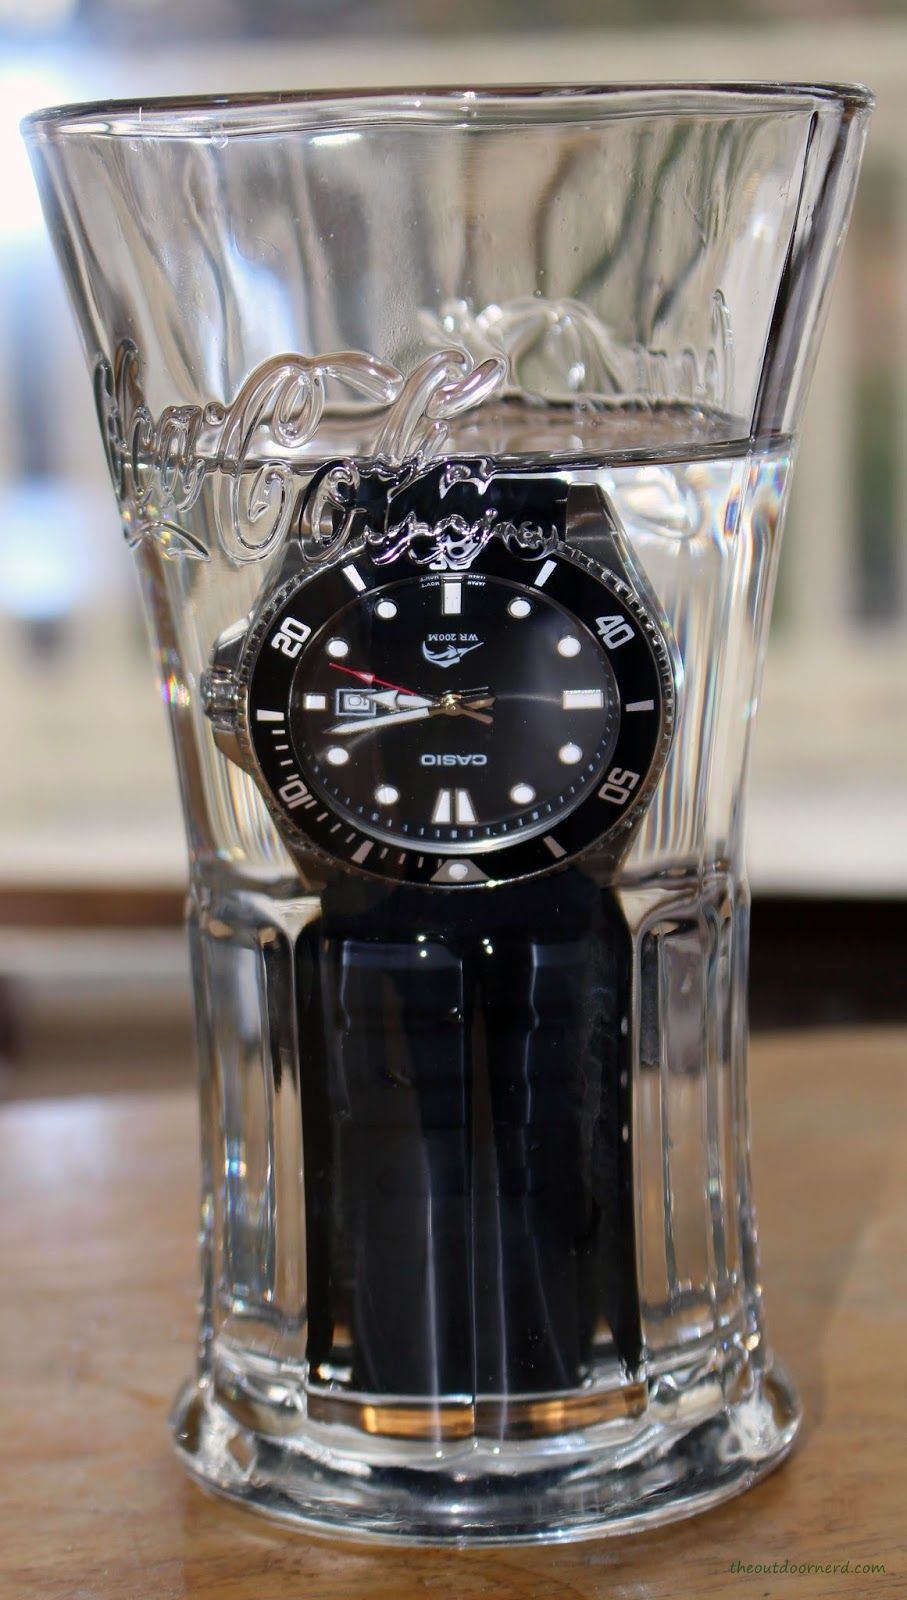 Casio MDV106-1A Diver's Watch: In Glass of Water